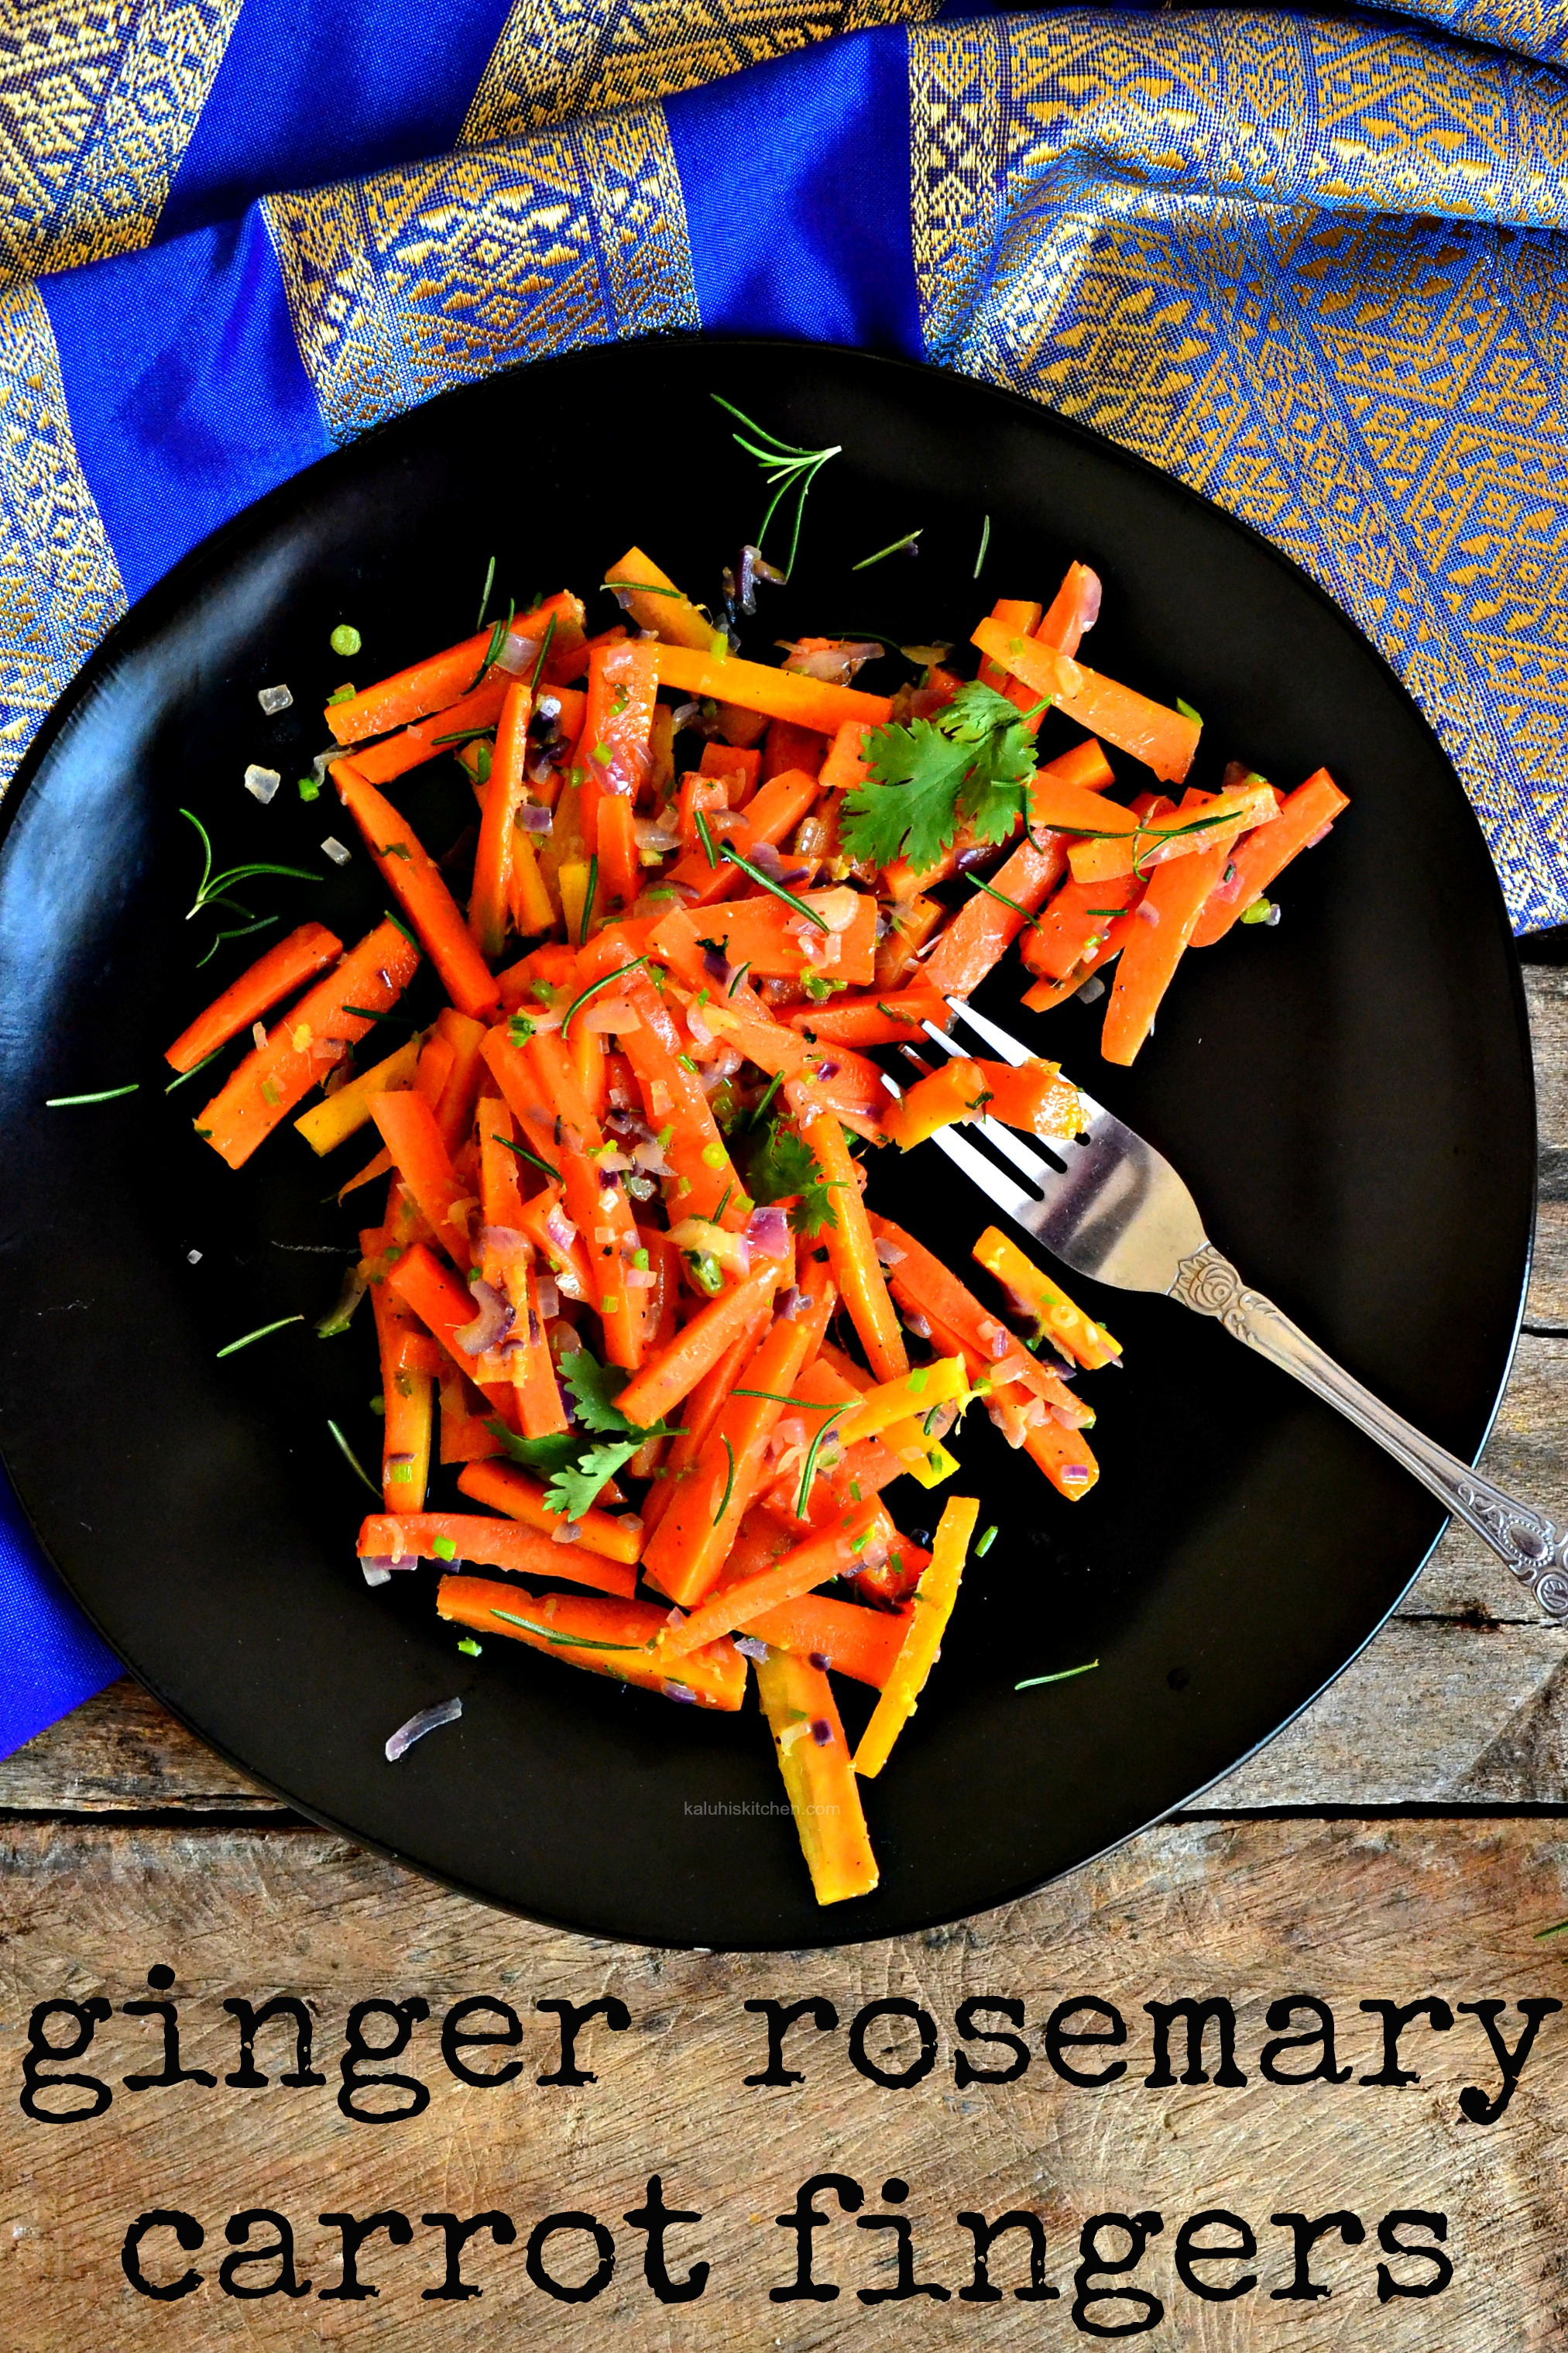 ginger-rosemary-carrot-fingers_how-to-make-carrots-delicious_carrot-recipes_kaluhiskitchen-com